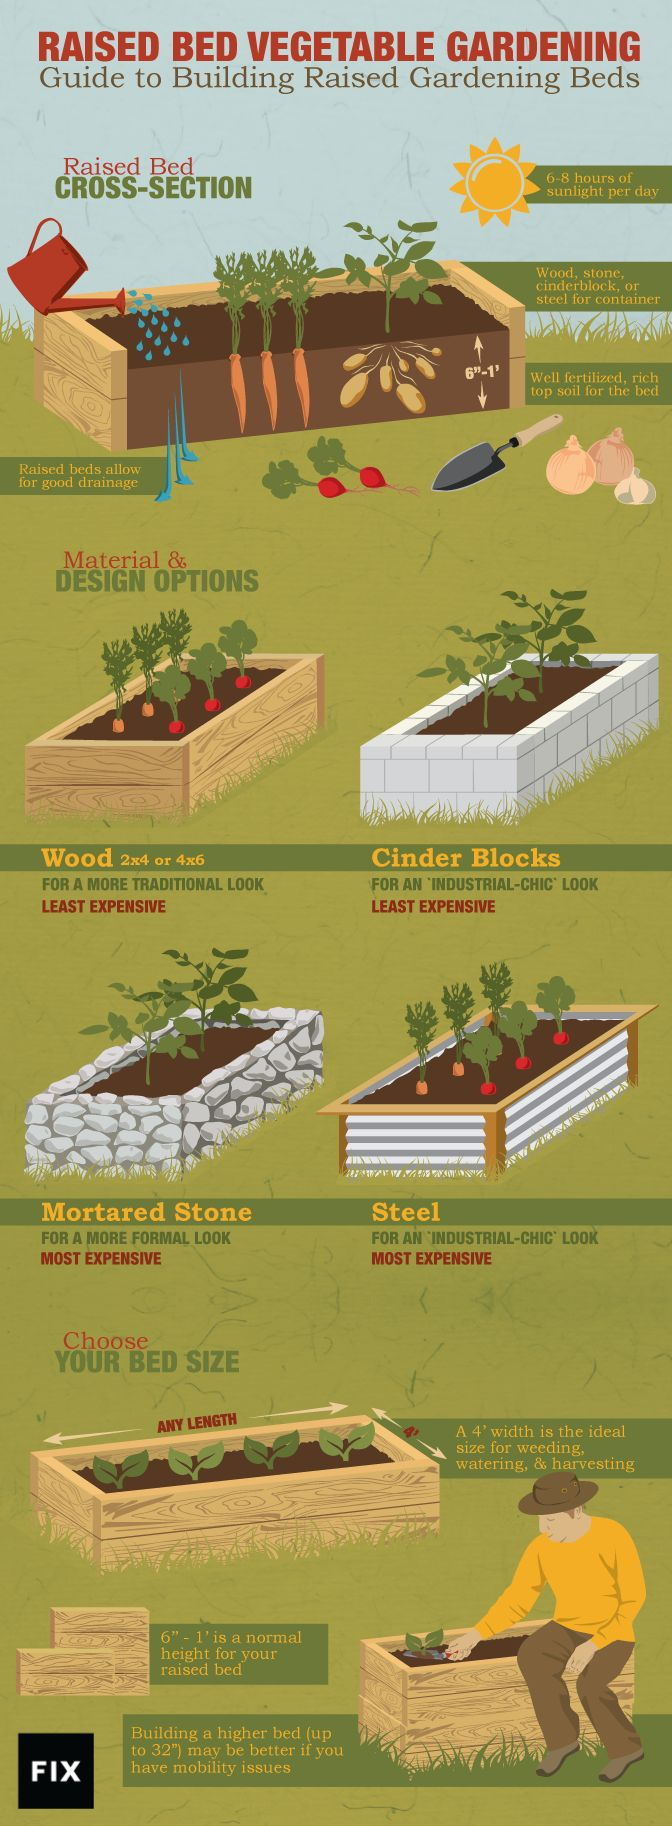 Making above ground garden beds - A Guide To Building Raised Gardening Beds